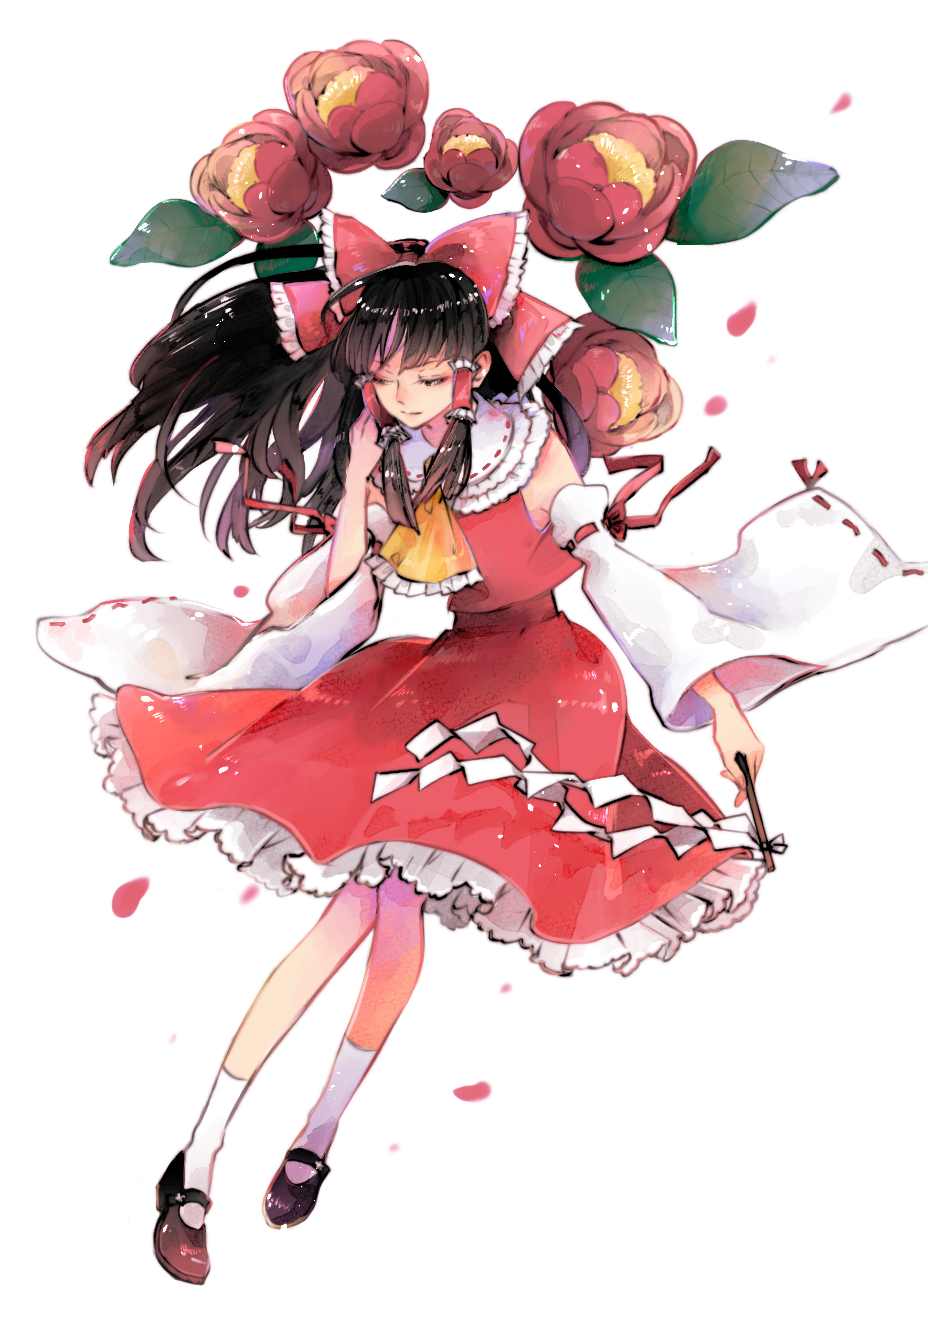 1girl arm_garter ascot bangs bare_shoulders black_footwear black_hair bow collared_shirt commentary_request detached_sleeves floating_hair flower frilled_bow frilled_neckwear frilled_shirt_collar frilled_skirt frills full_body gohei hair_bow hair_tubes hakurei_reimu half-closed_eyes hand_up highres holding leaf long_hair looking_down mary_janes petals red_bow red_flower red_ribbon red_shirt red_skirt ribbon ribbon-trimmed_collar ribbon-trimmed_sleeves ribbon_trim ringocha shide shiny_footwear shirt shoes sidelocks simple_background skirt skirt_set sleeveless sleeveless_shirt socks solo touhou white_background white_legwear wide_sleeves yellow_neckwear